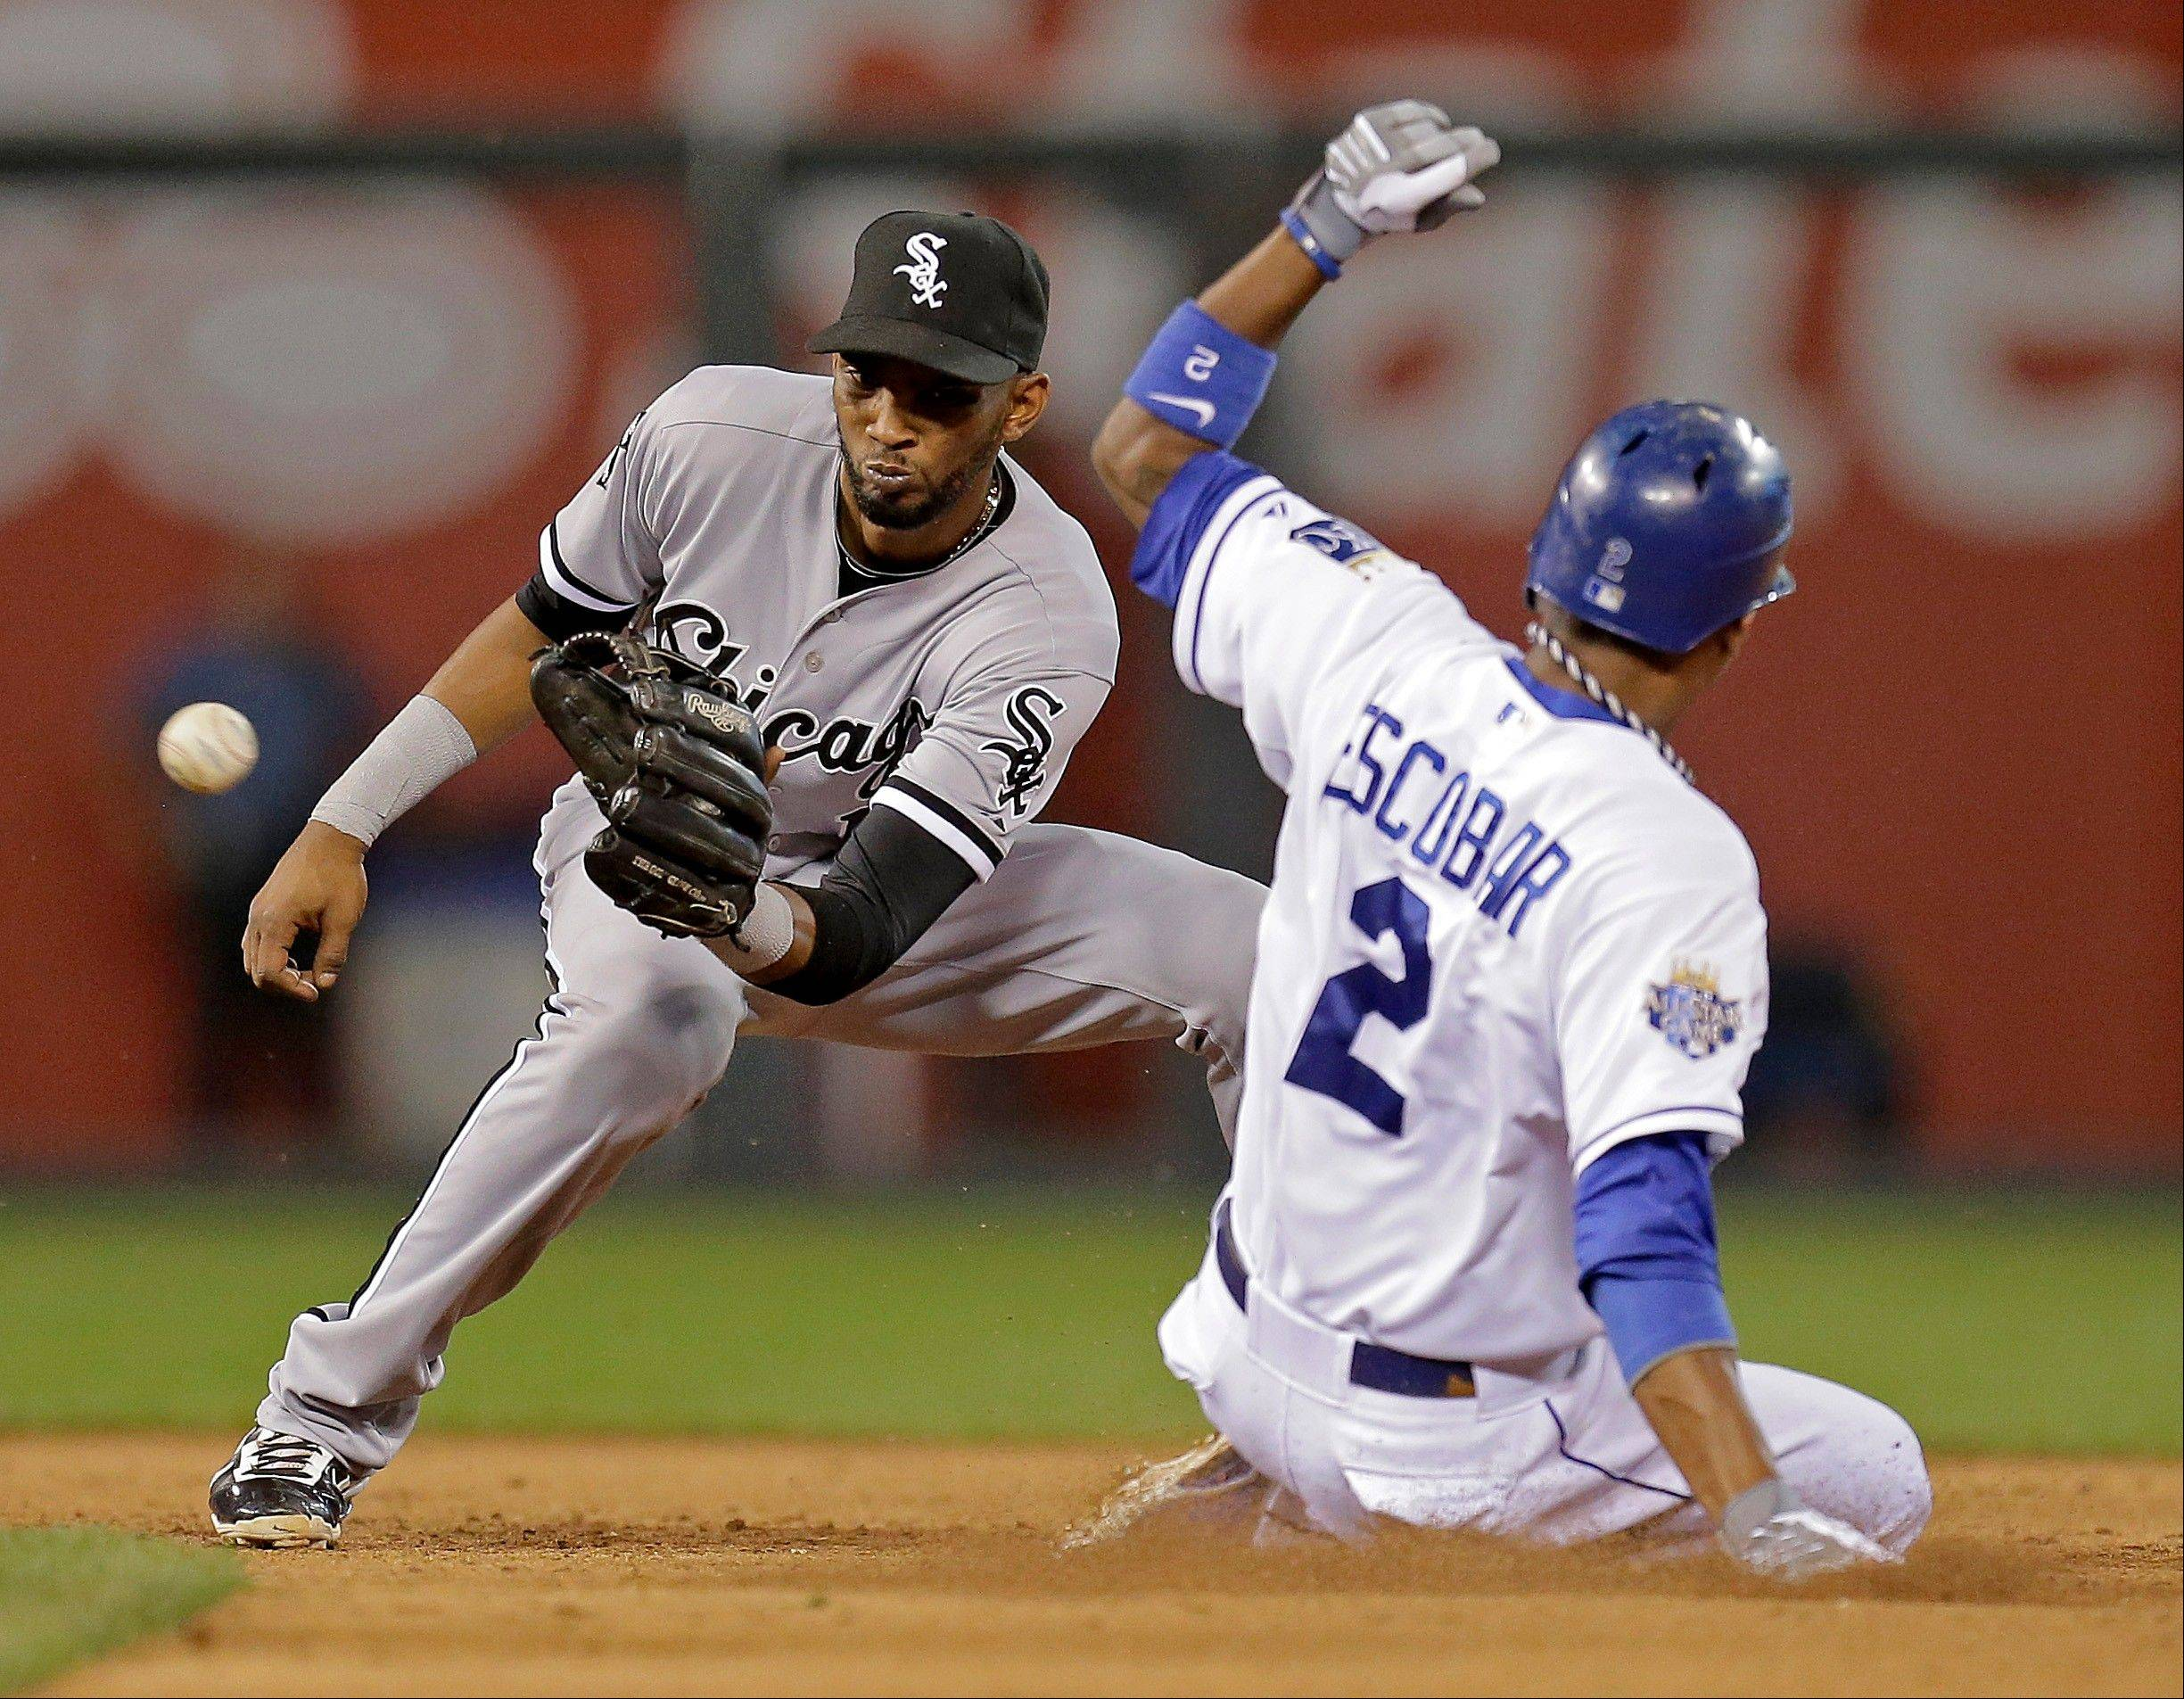 The Kansas City Royals' Alcides Escobar beats the tag by White Sox shortstop Alexei Ramirez to steal second base Wednesday during the fifth inning in Kansas City, Mo.